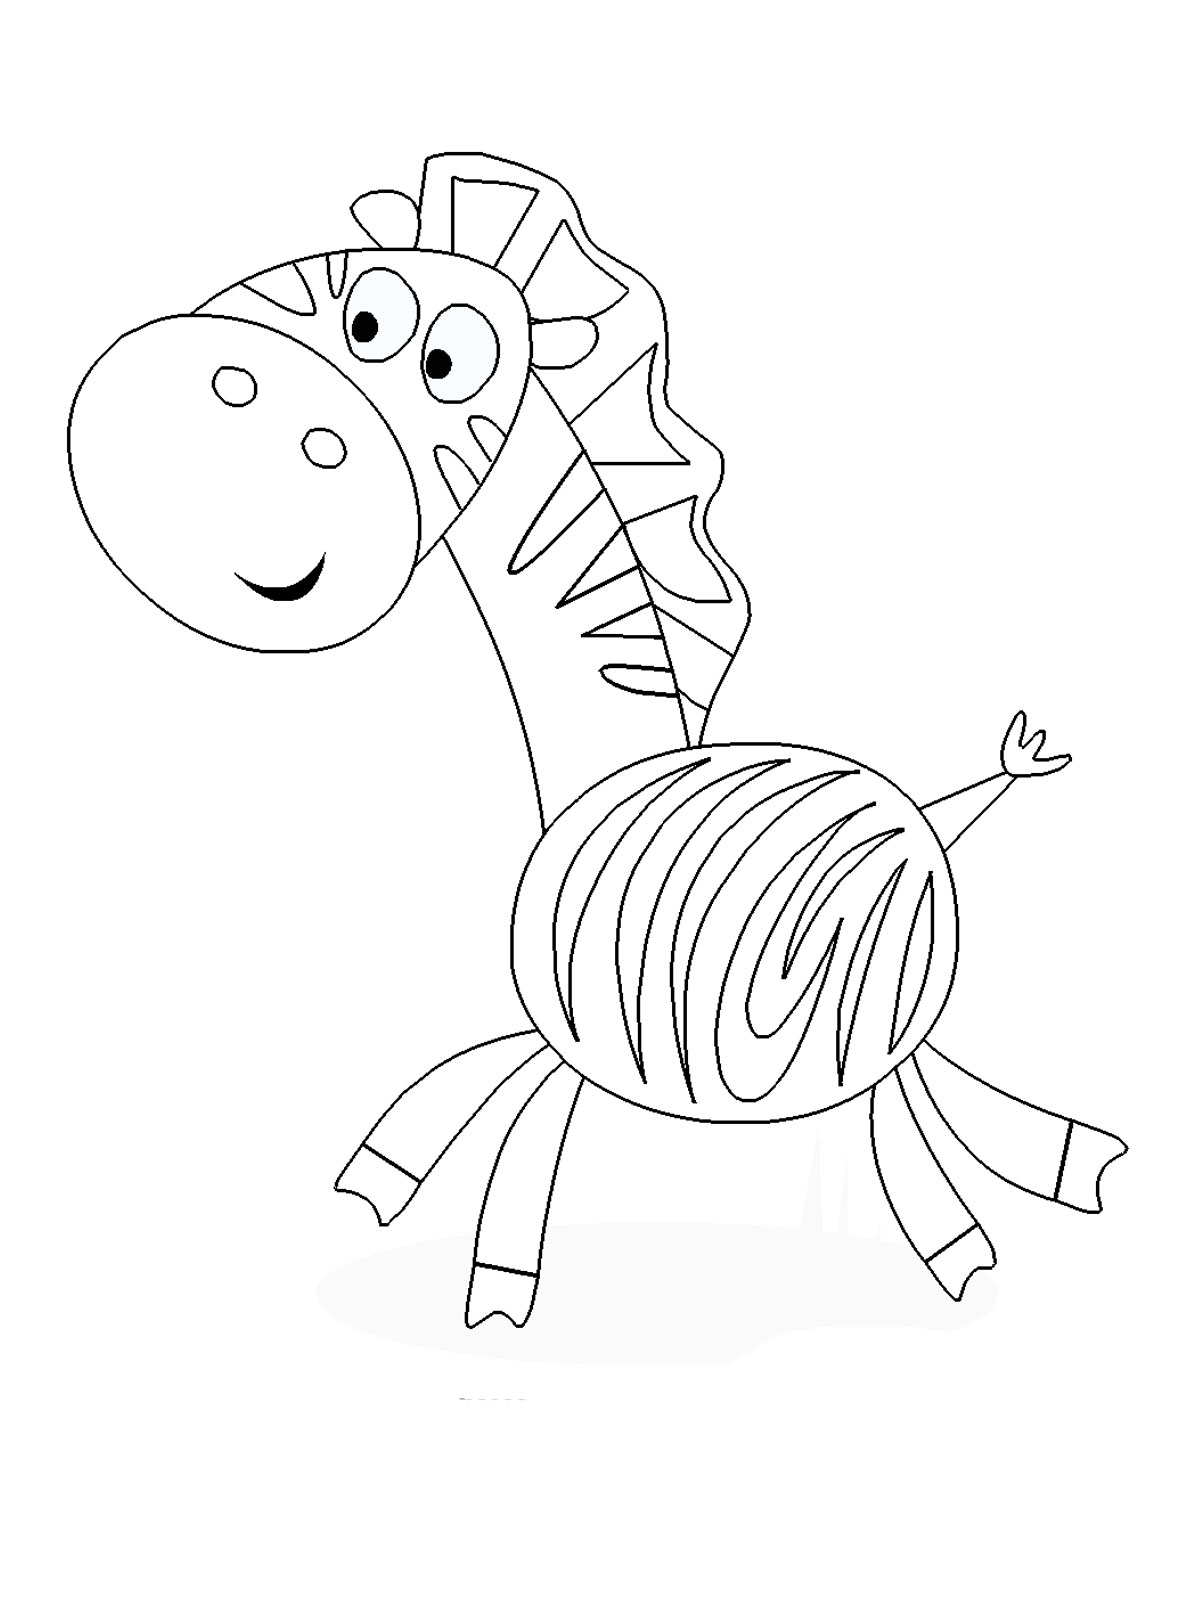 coloring sheets for toddler printable toddler coloring pages for kids for sheets toddler coloring